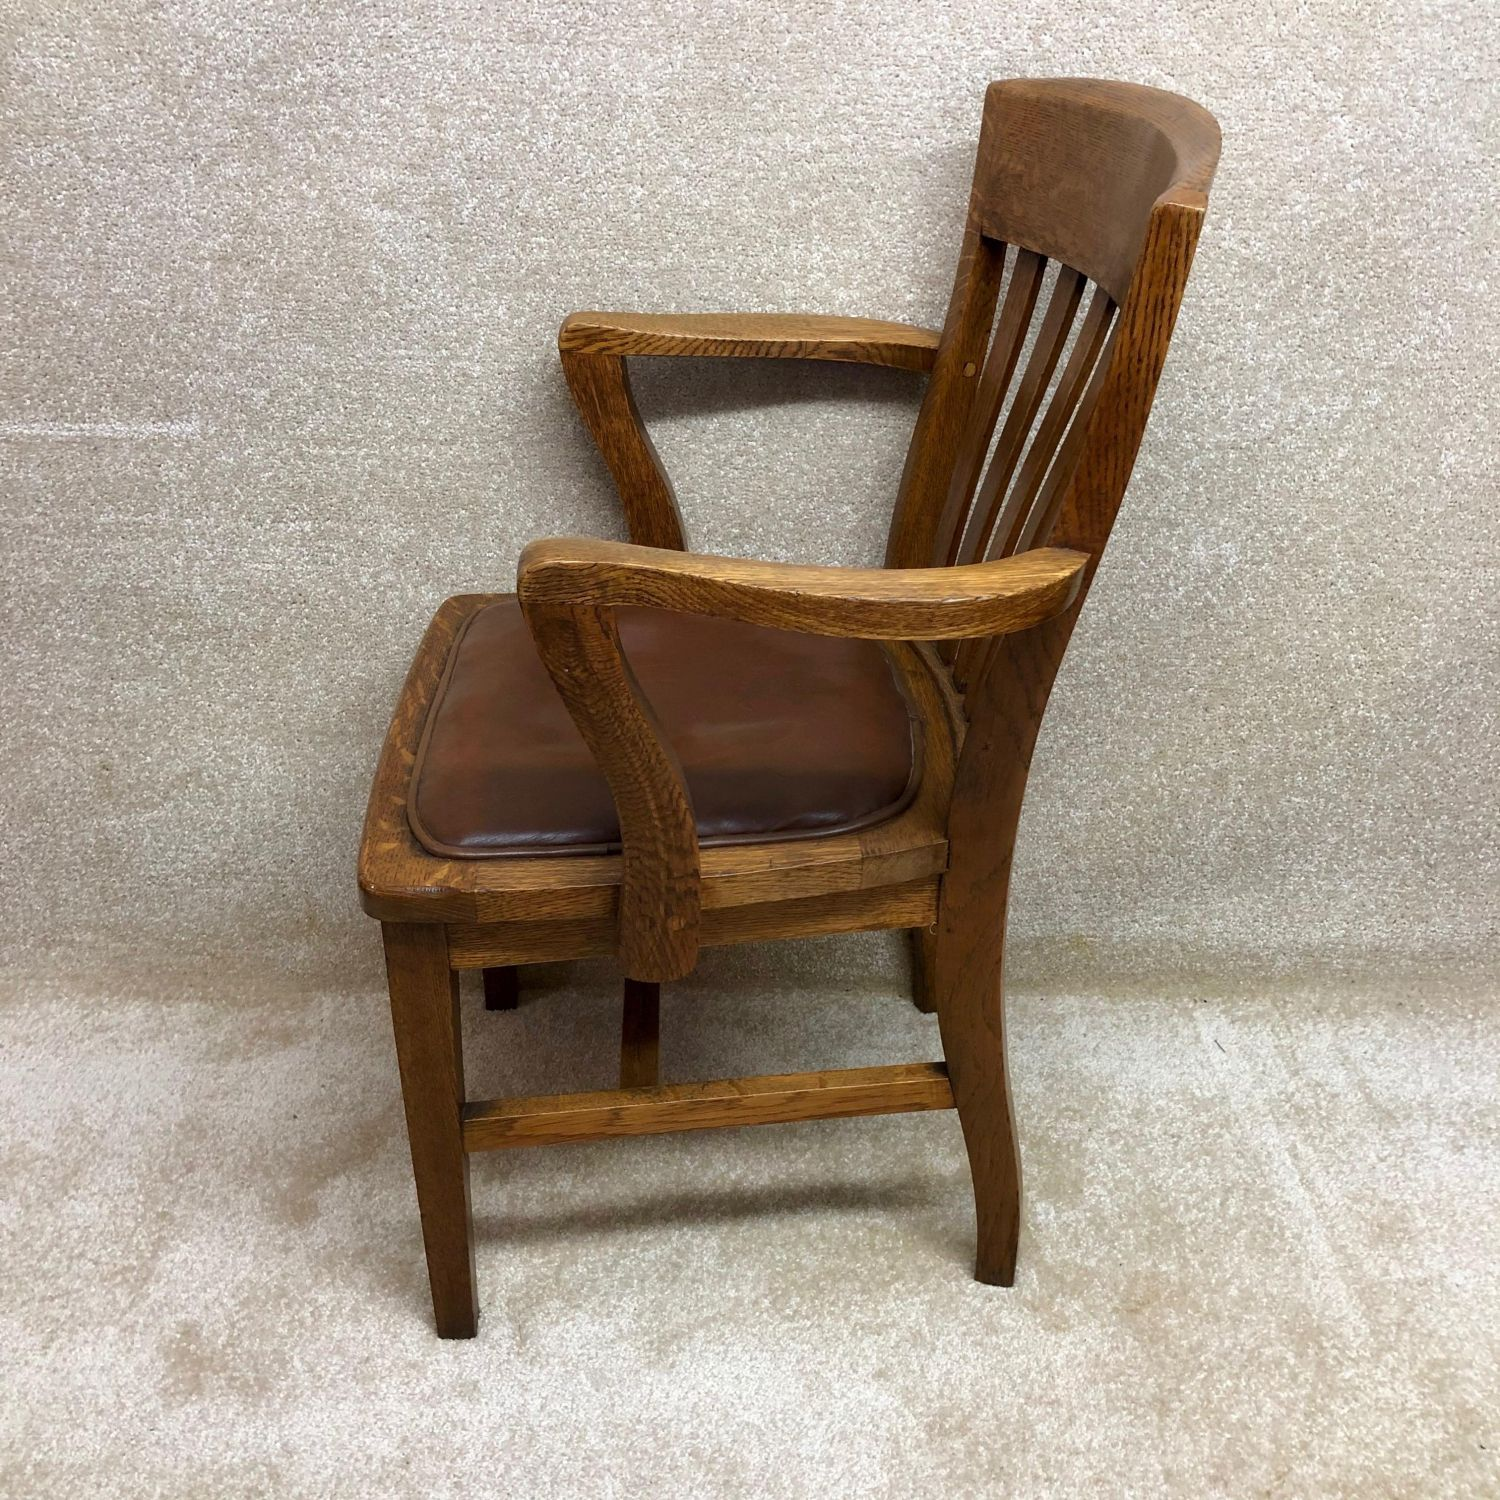 1930s Oak Office Chair - Antique Chairs - Hemswell Antique ...